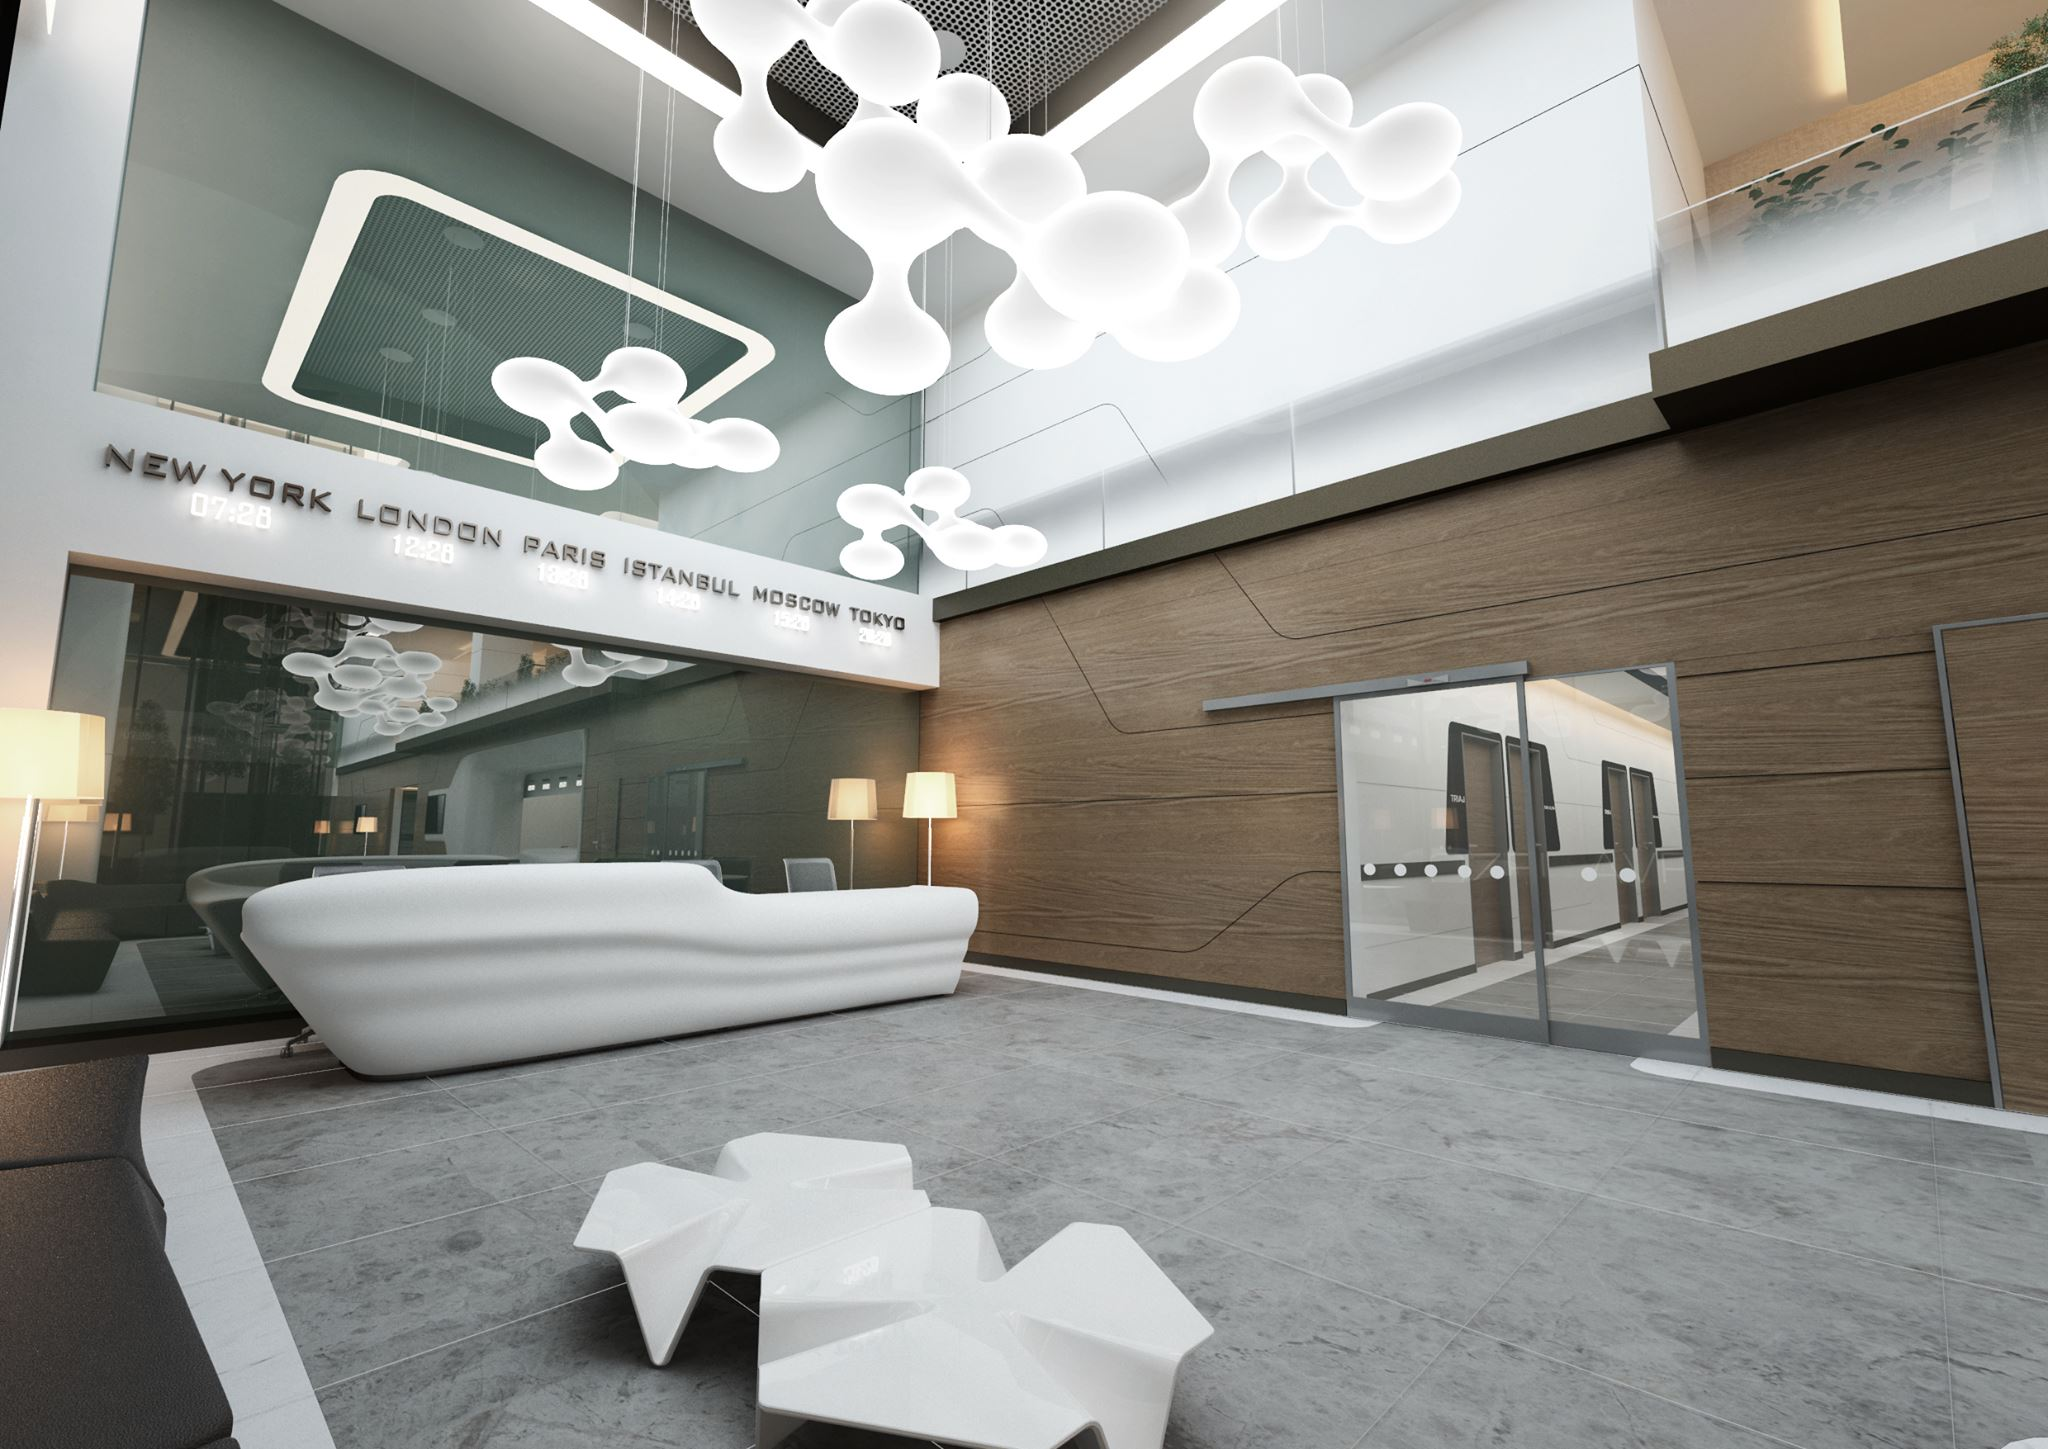 Go Straight To The Future With These Renowned Hospitality Design Projects of Zoom Studio! zoom studio Go Straight To The Future With These Renowned Hospitality Design Projects of Zoom Studio! 5 6